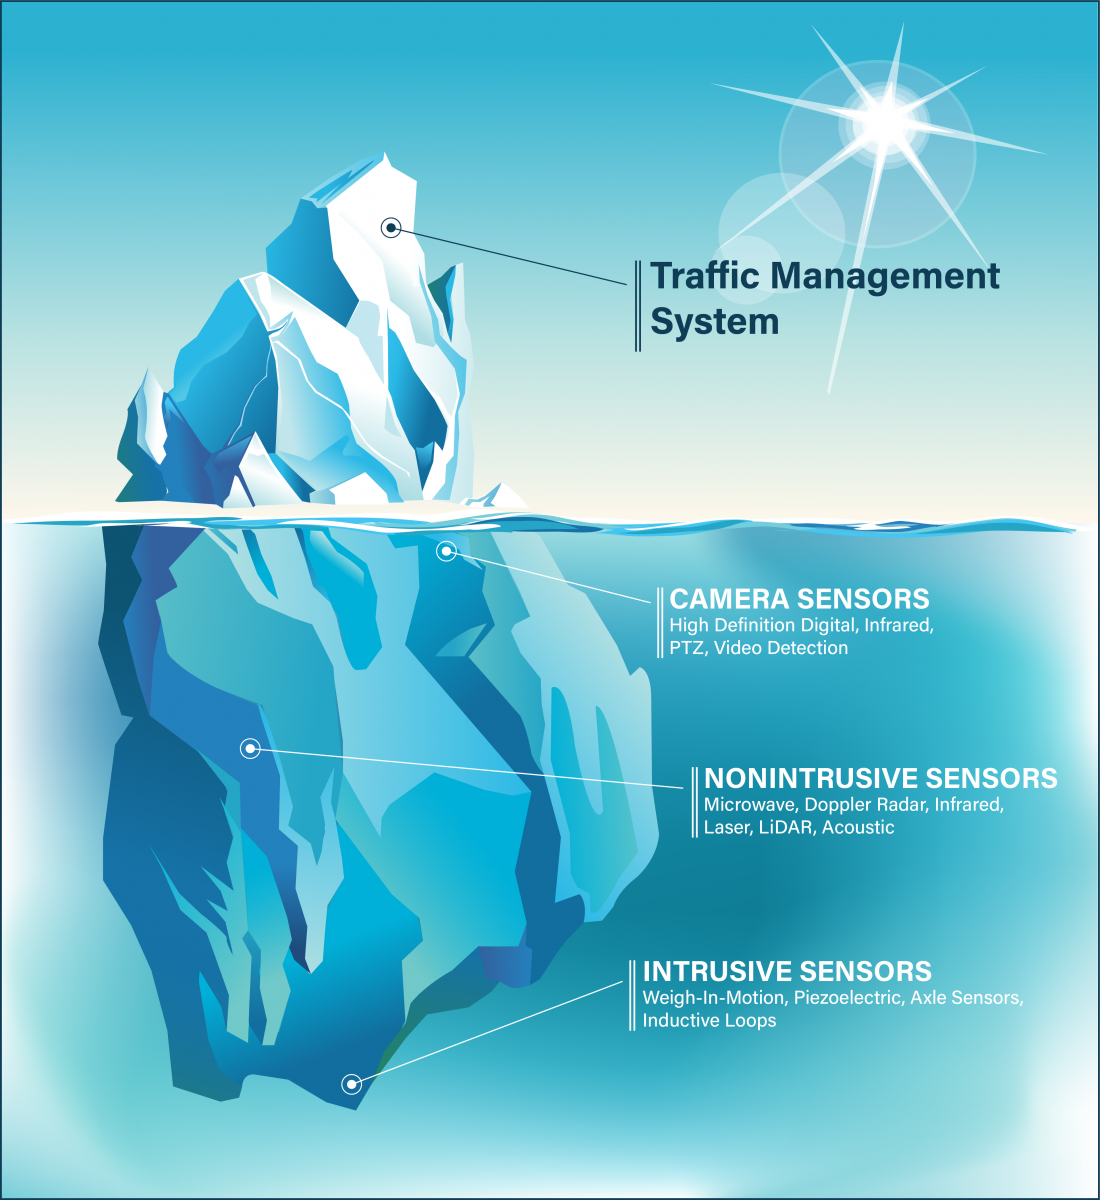 Traffic Sensors are the Foundation of the Traffic Management System